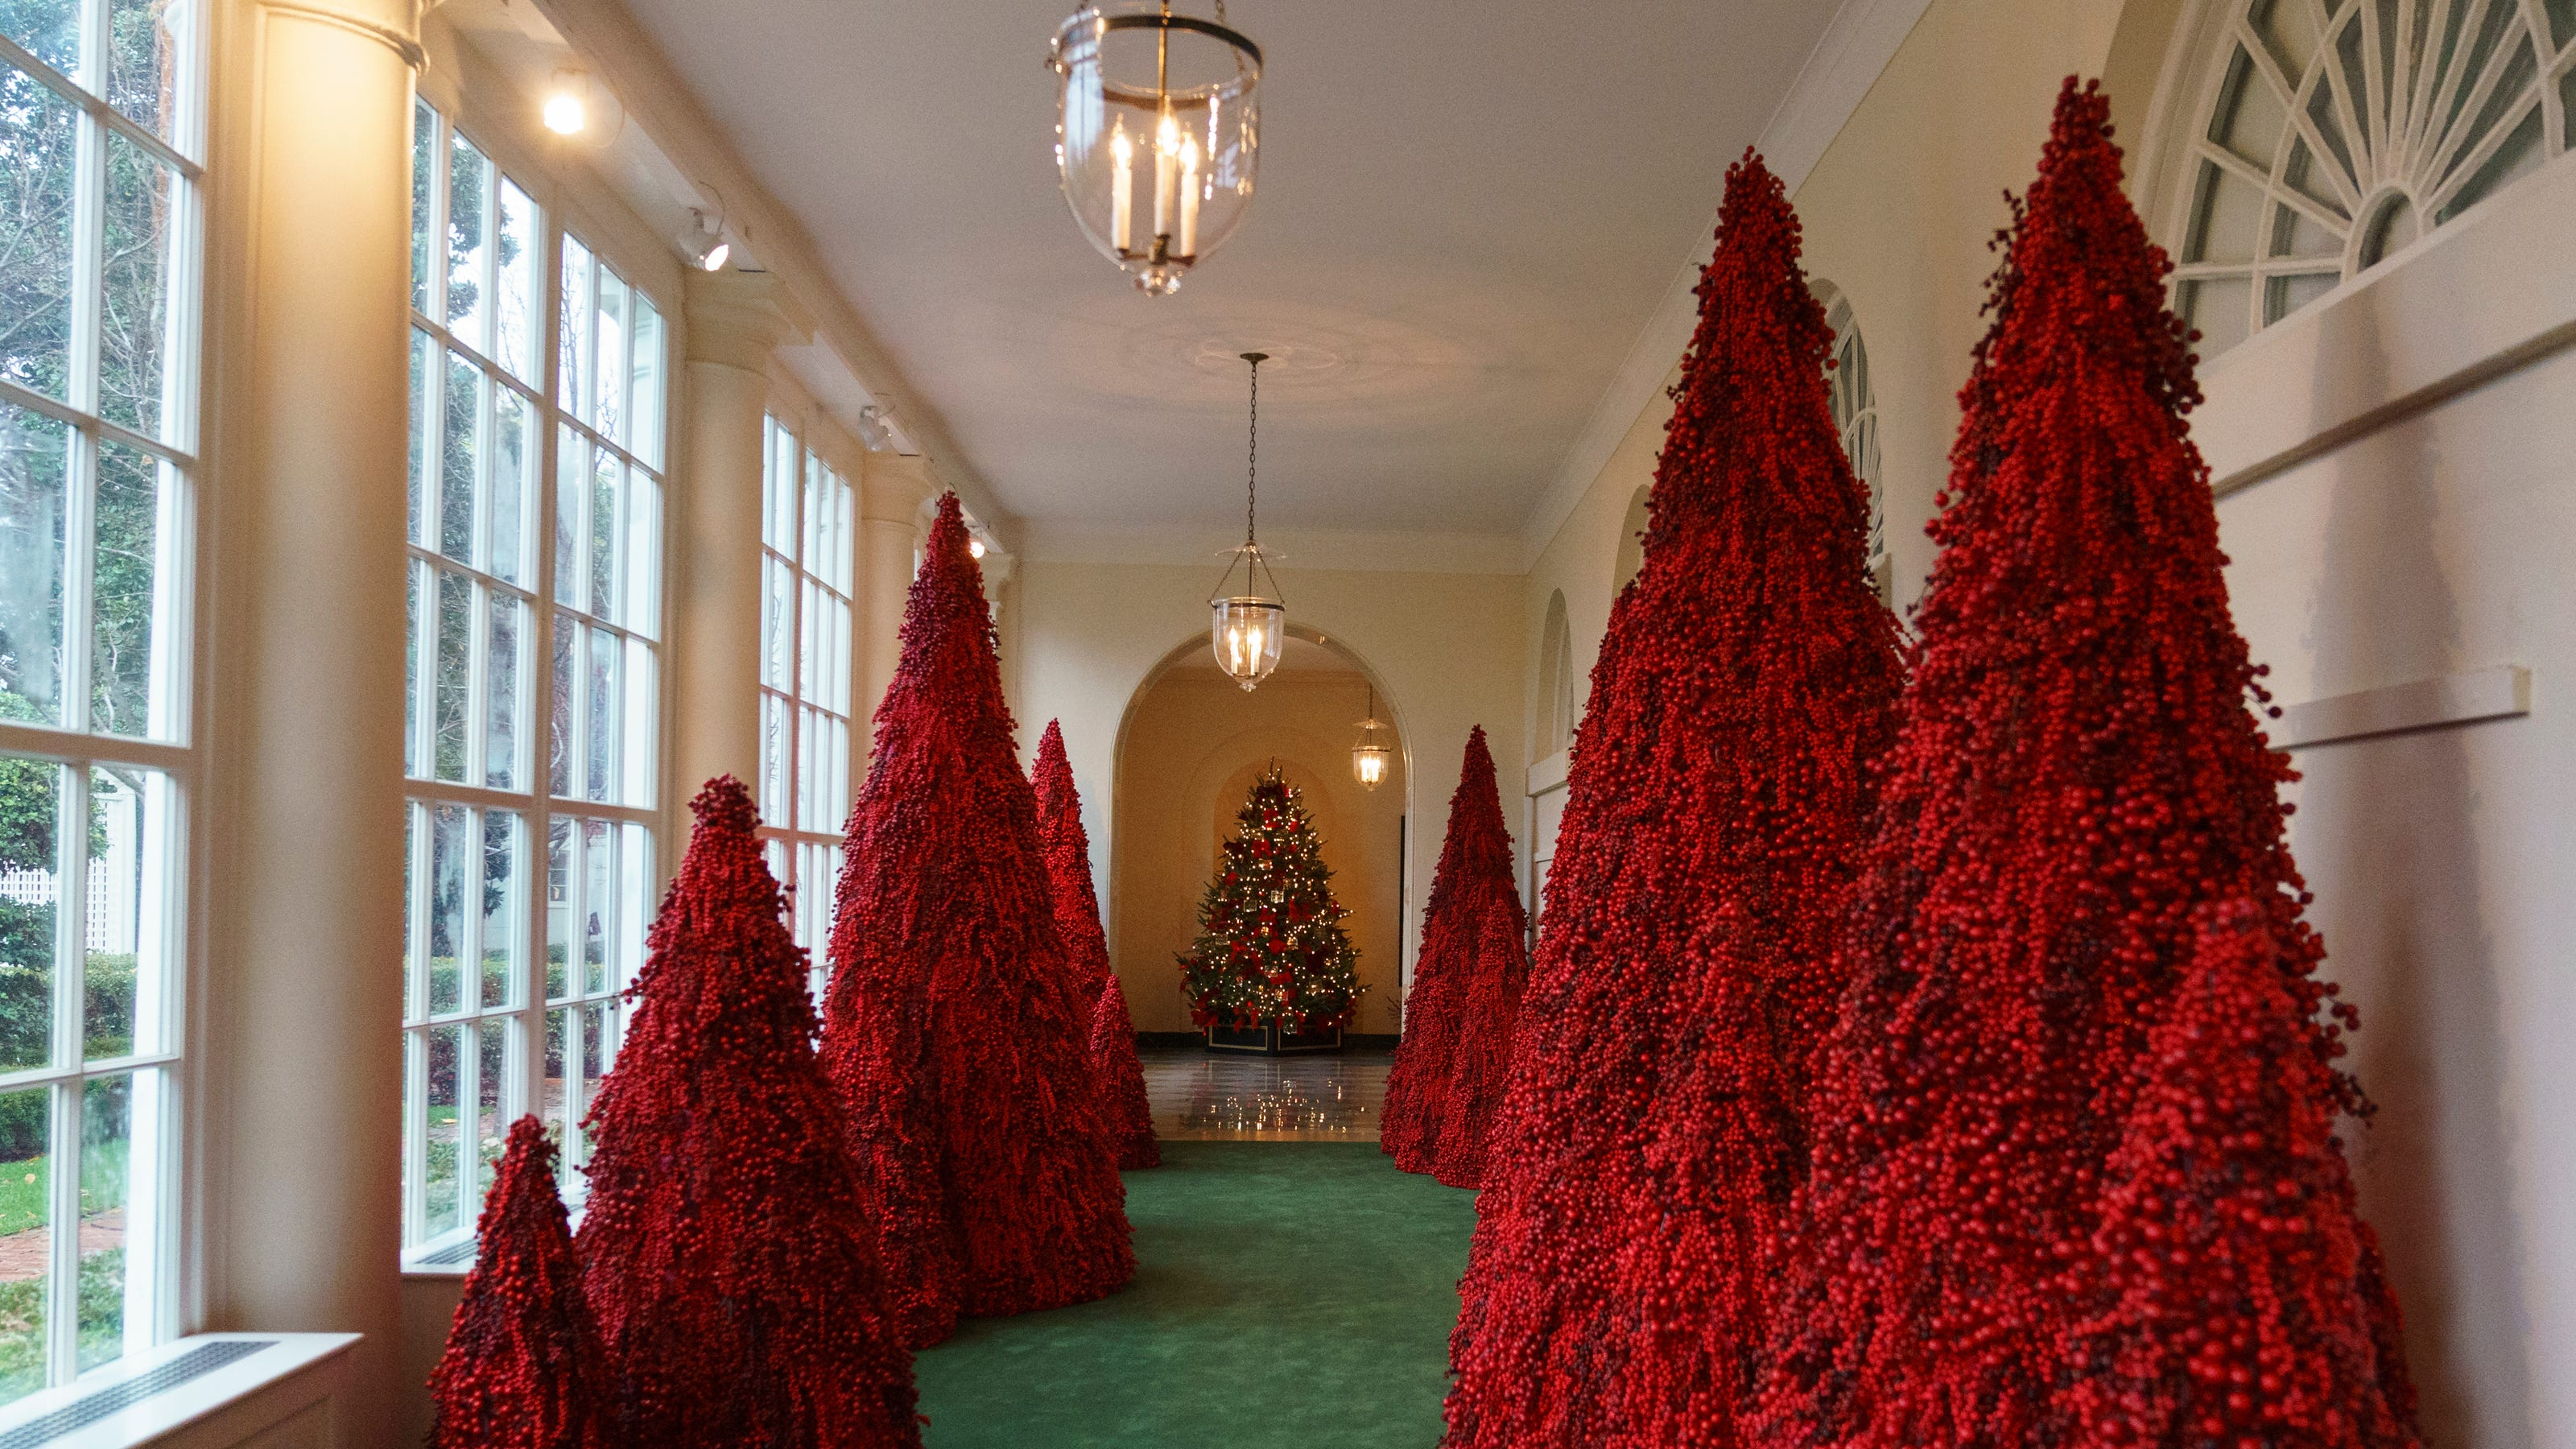 Trump S Red Christmas Trees Have Twitter Crying Handmaid S